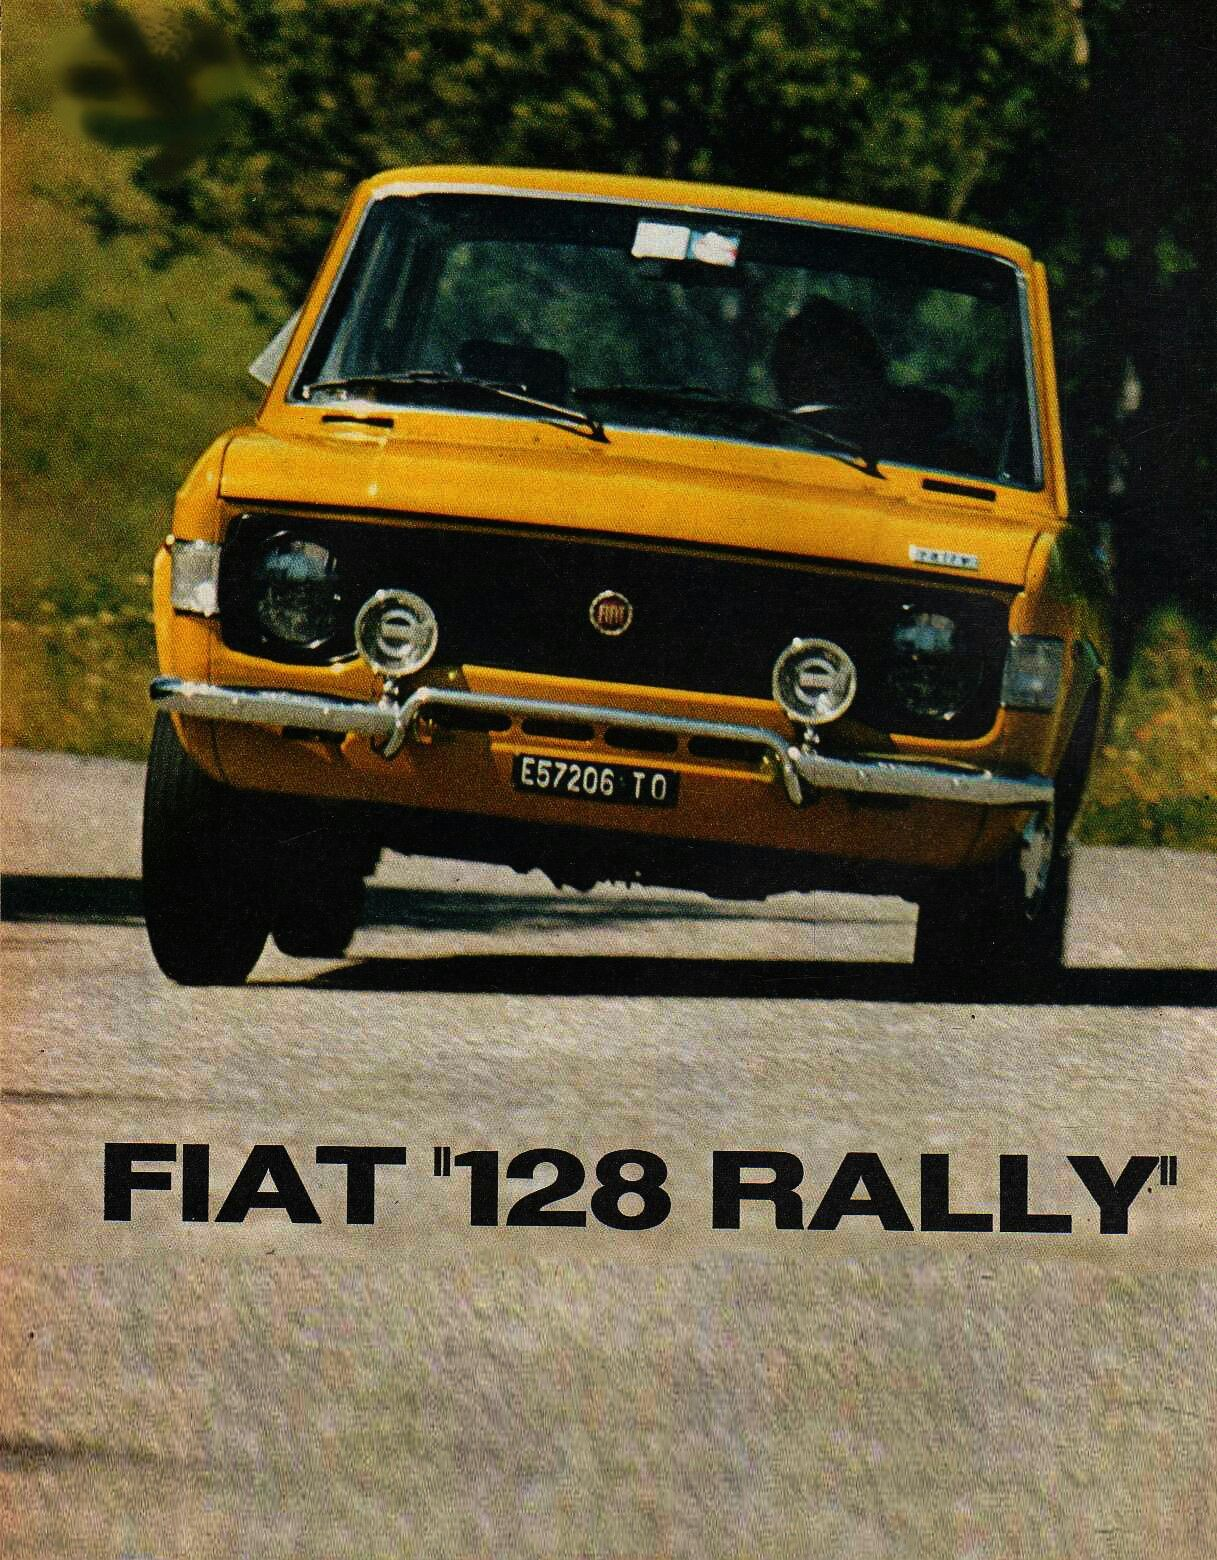 Fiat 128 Rally Fiat 128 Retro Cars Fiat